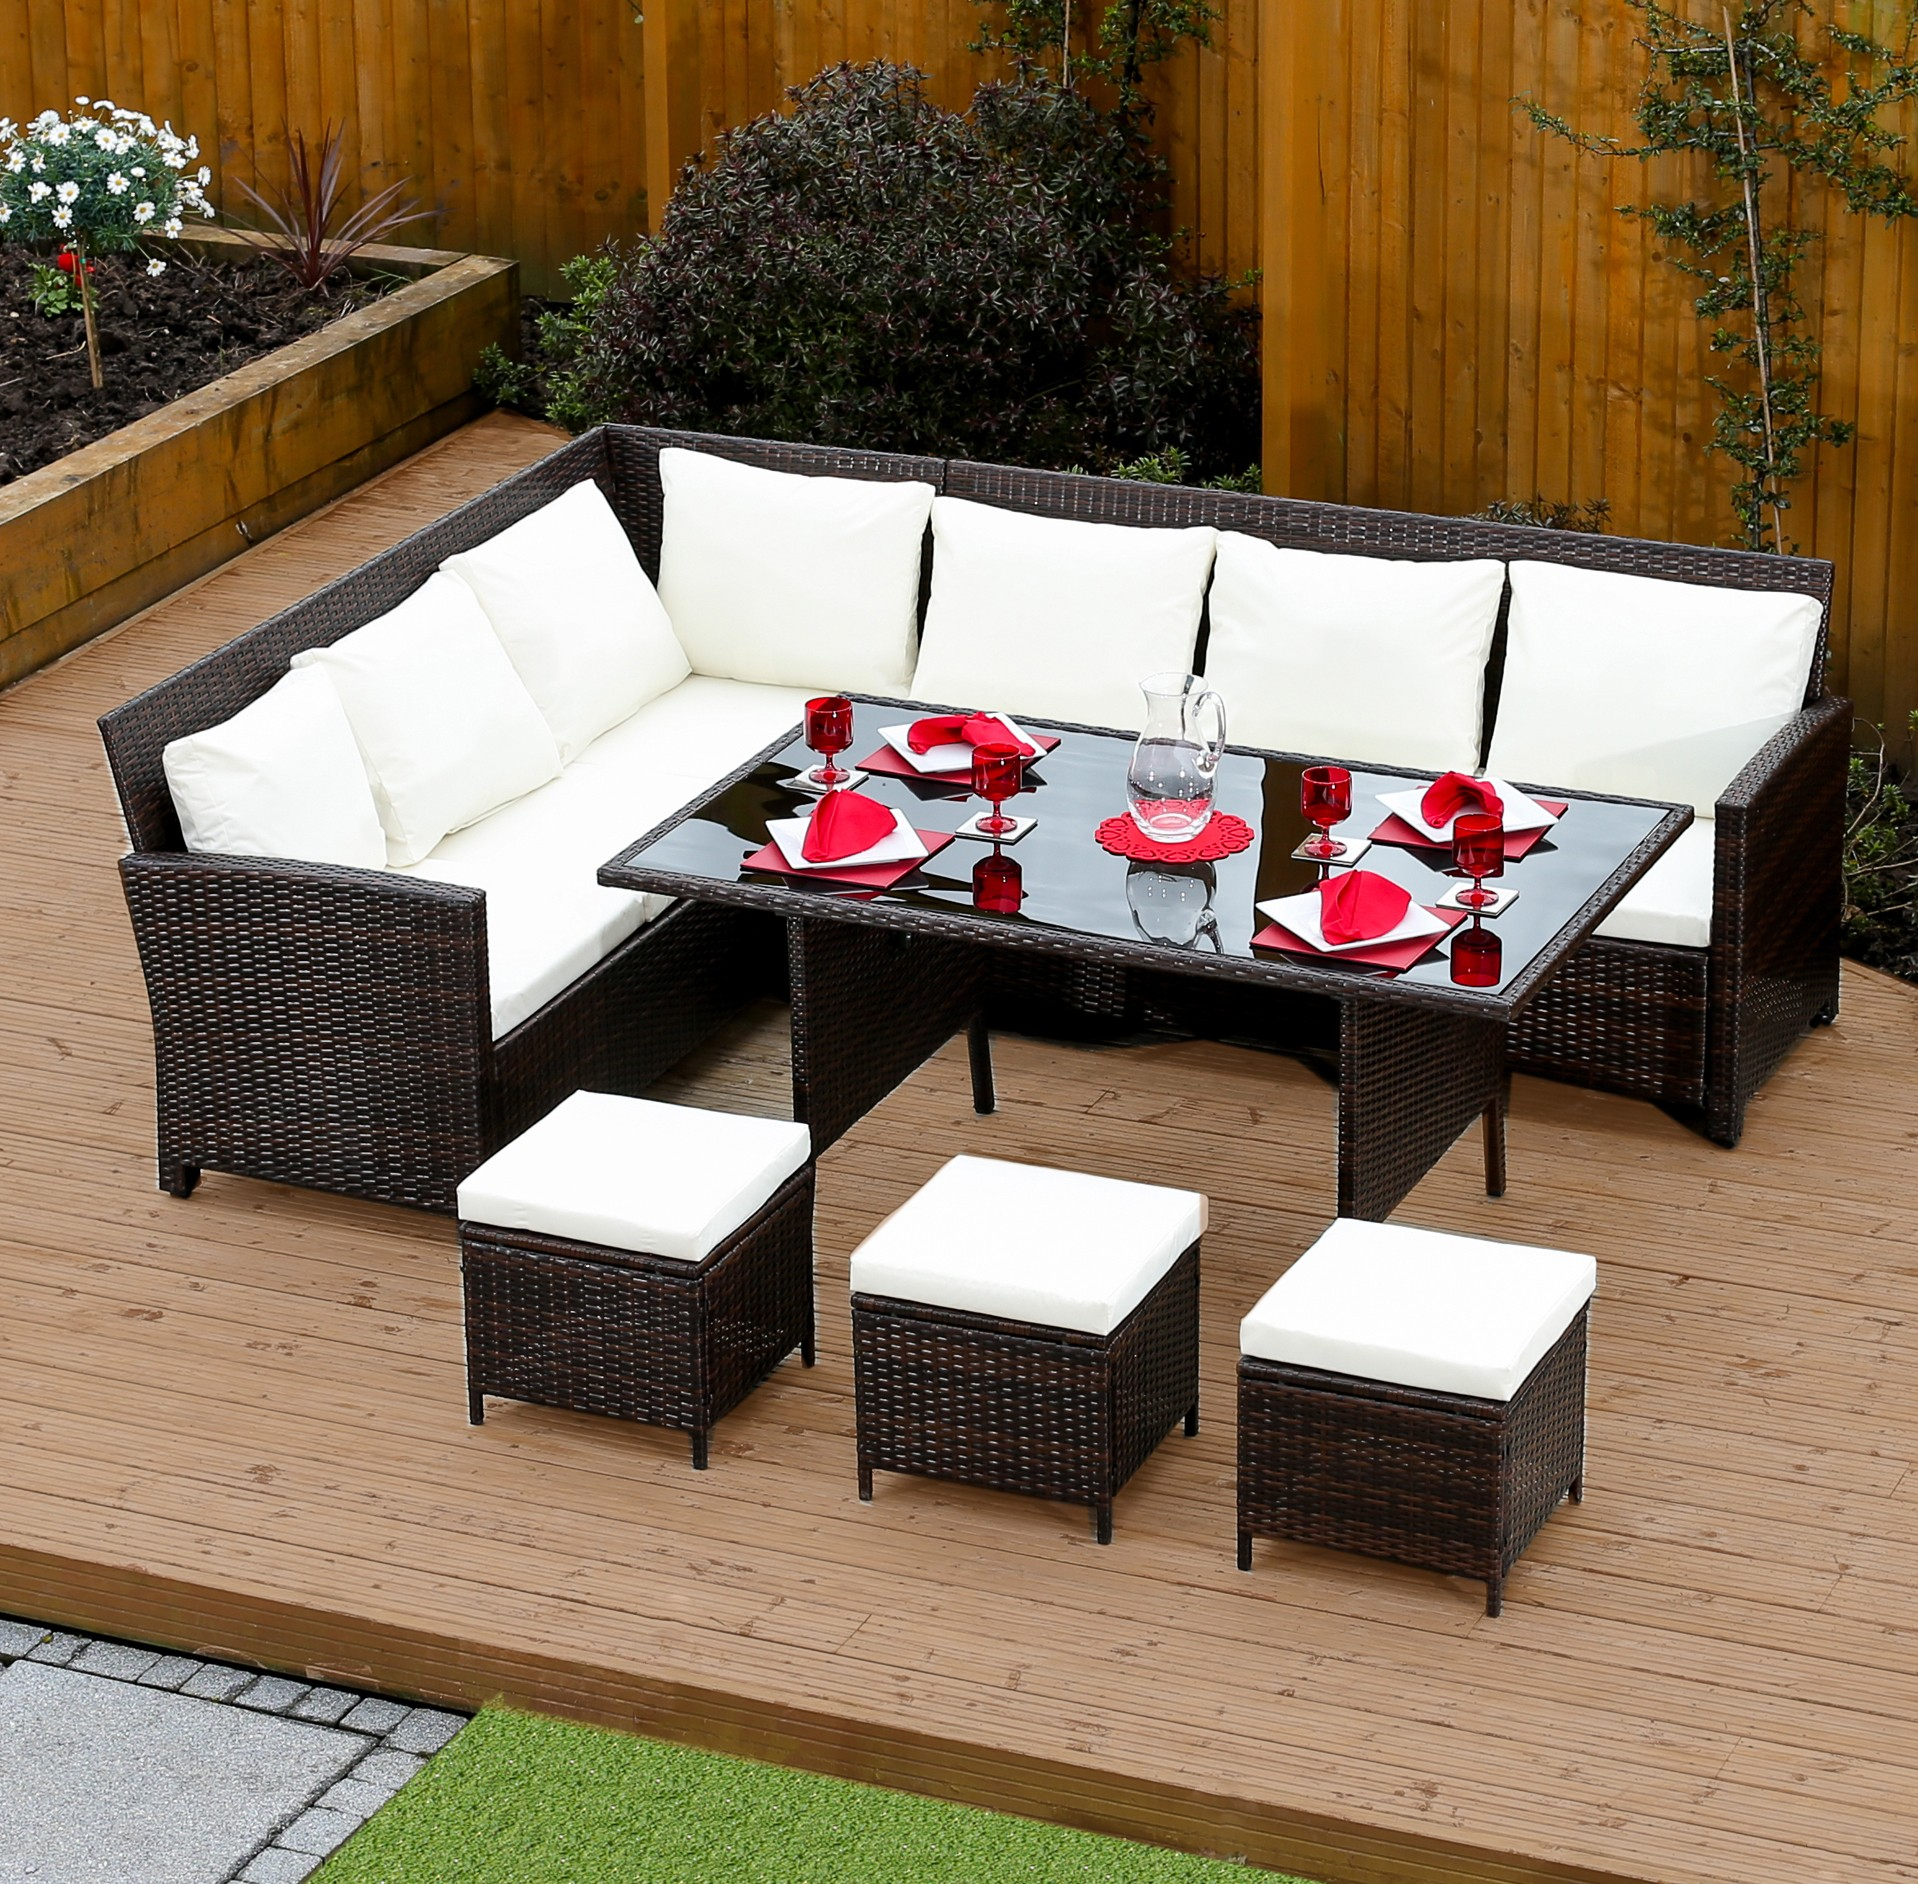 Brown 9 Seat Rattan Corner Dining Set From Abreo Abreo